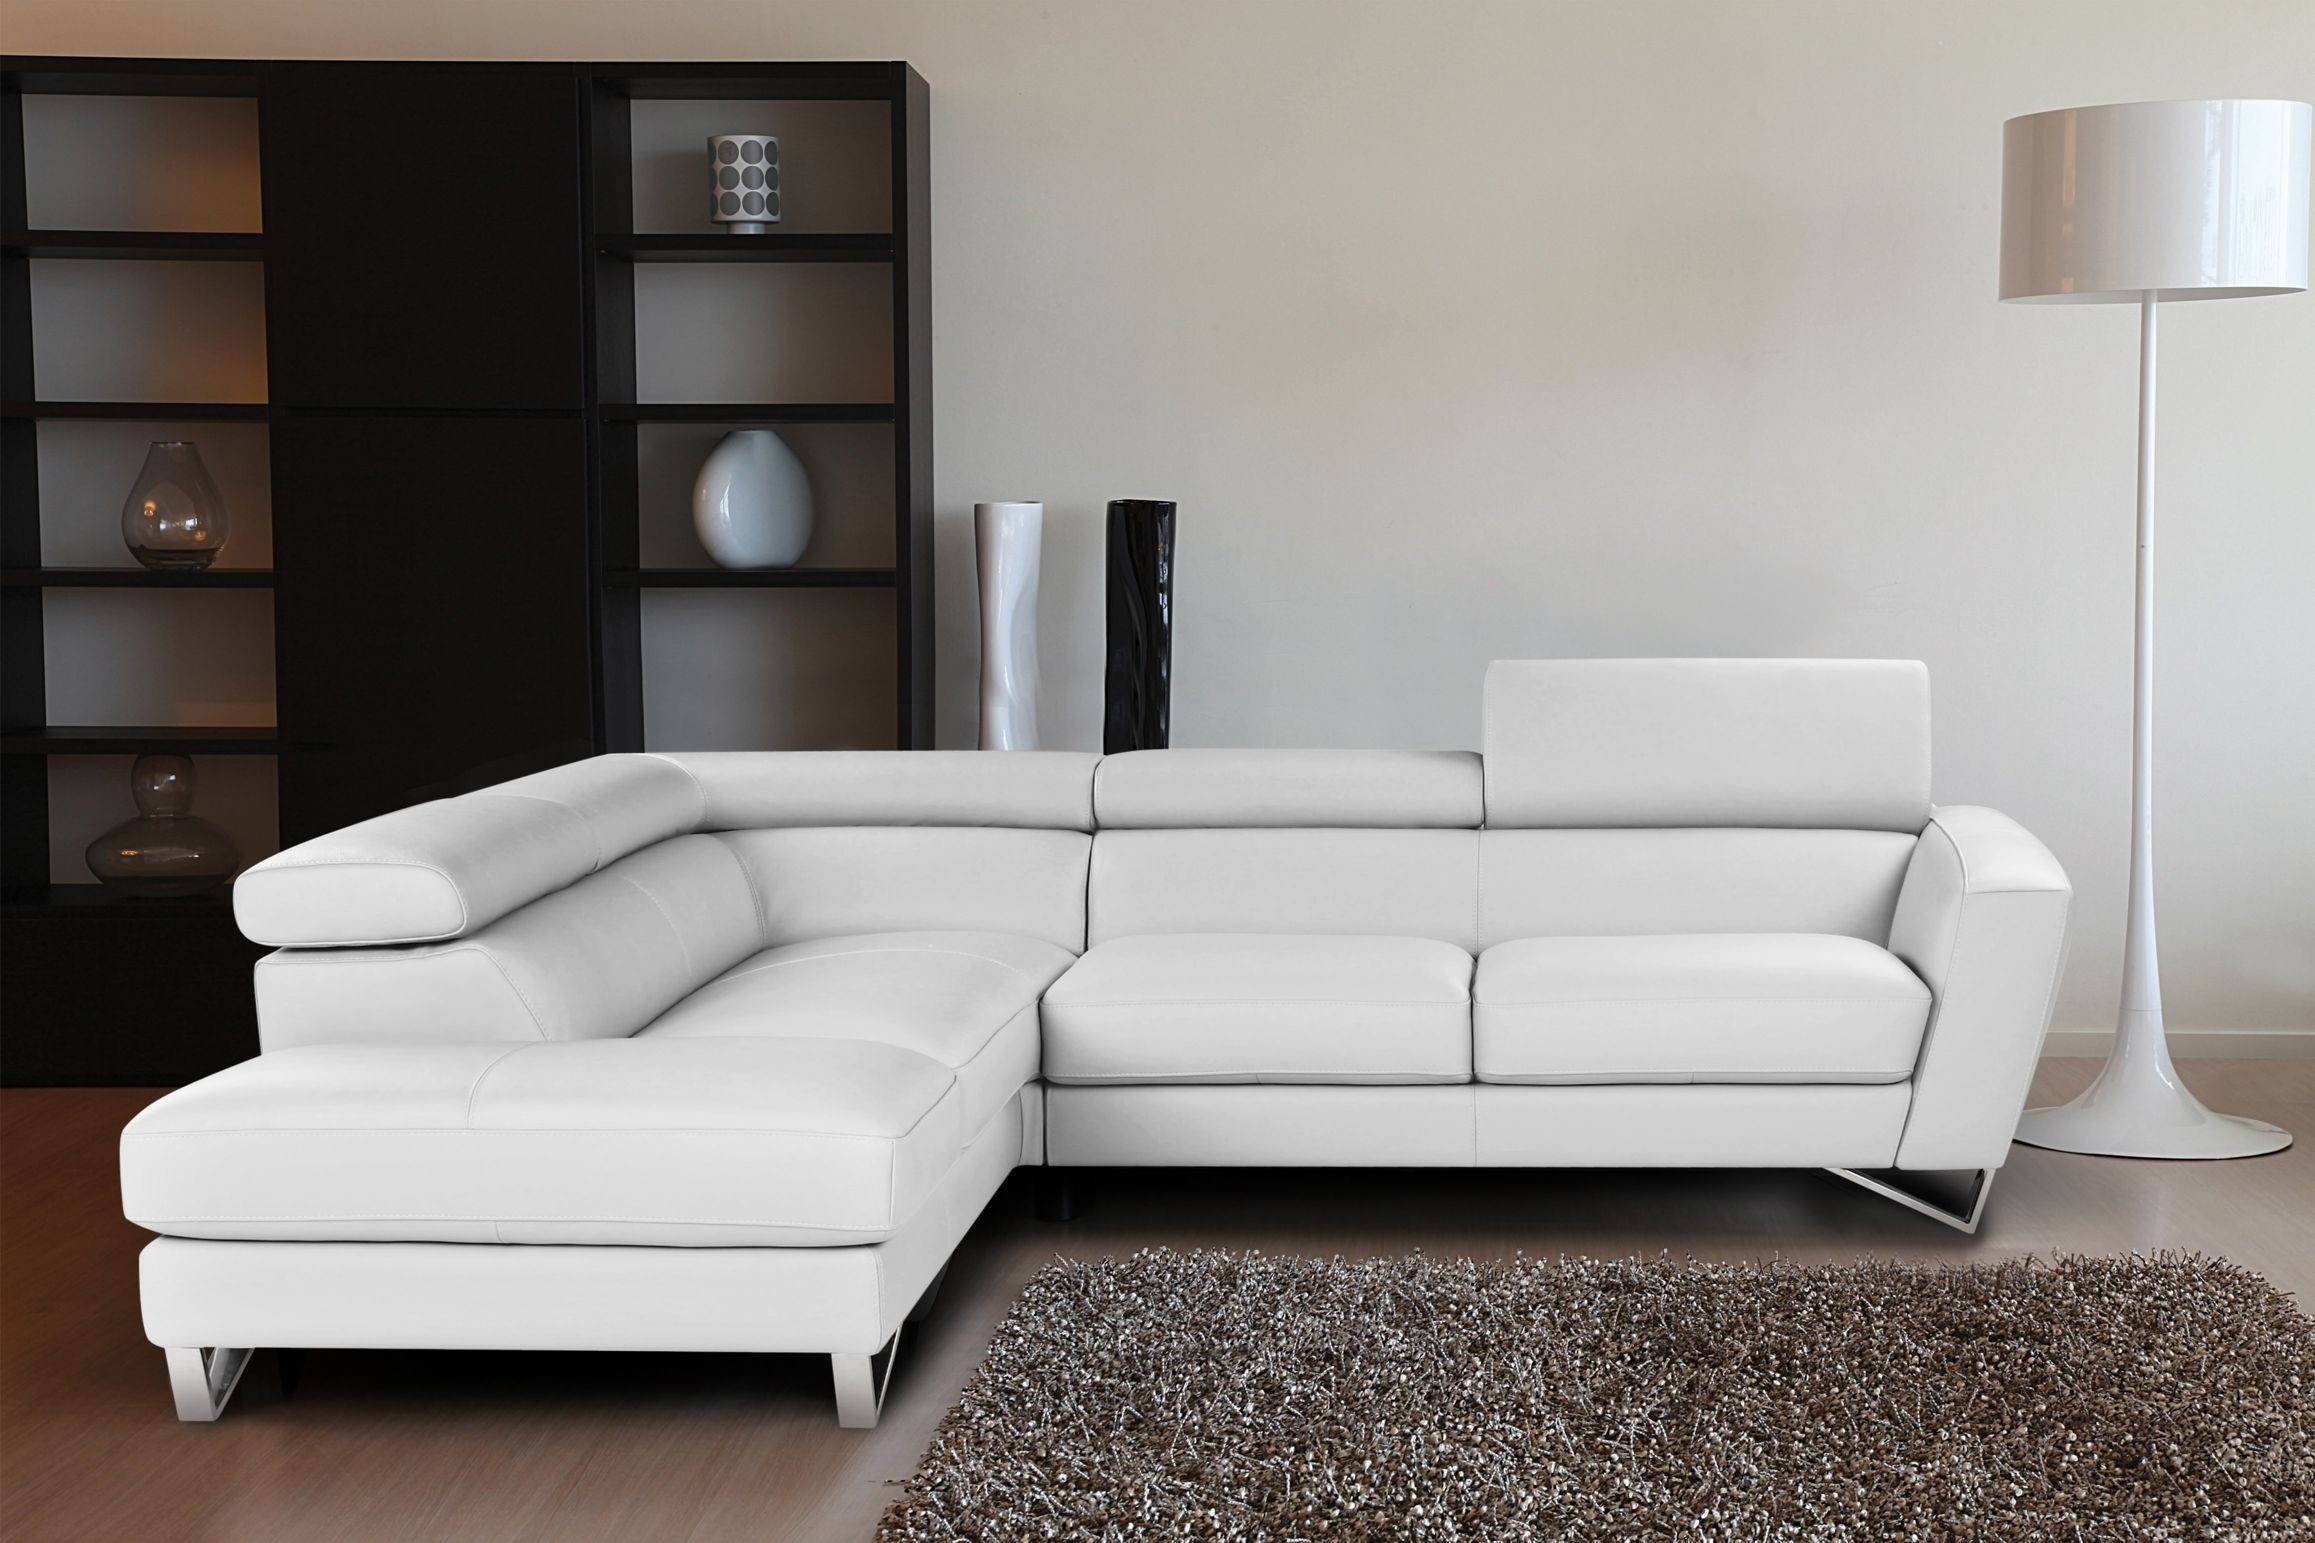 Sparta Italian Leather Modern Sectional Sofa Intended For Modern Sectional Sofas (View 9 of 10)